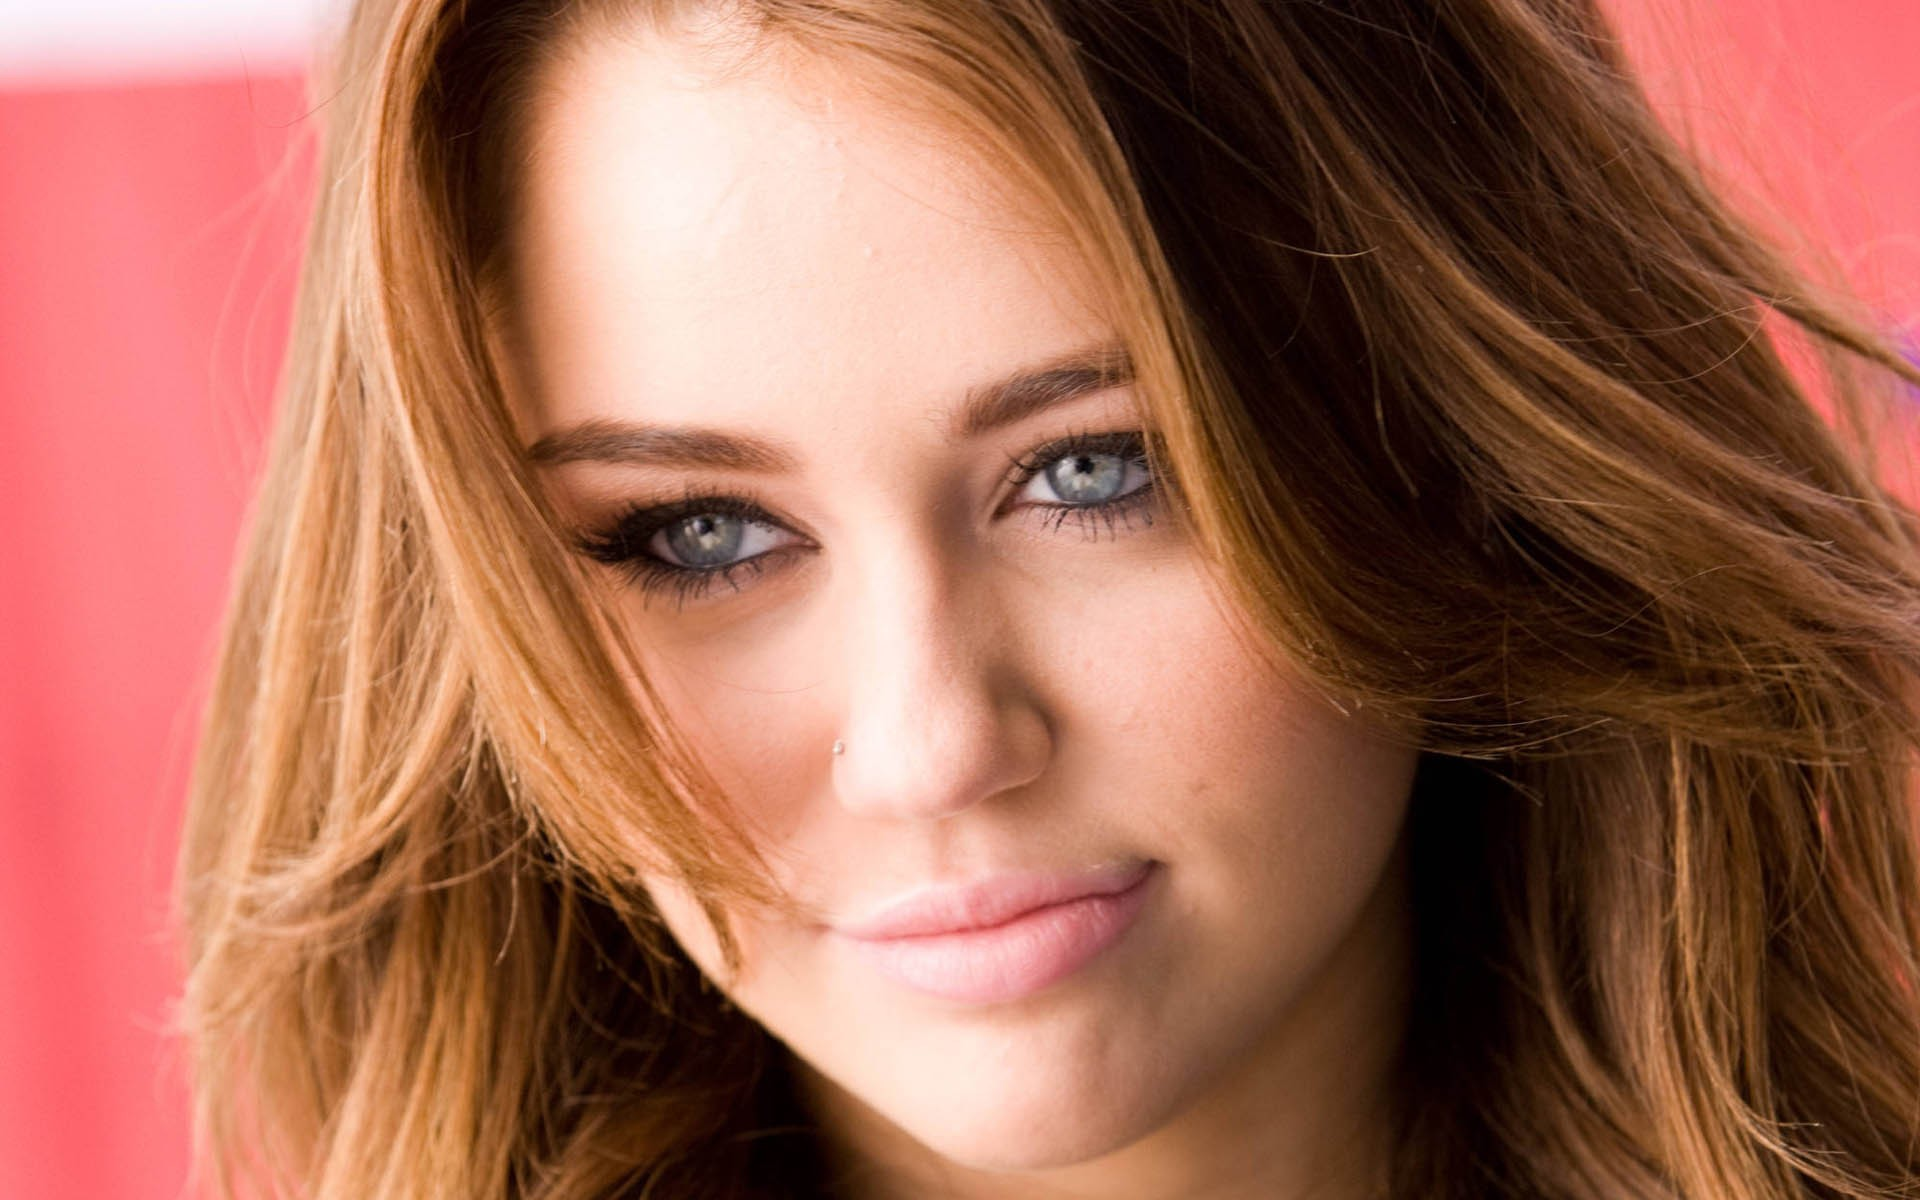 Miley Cyrus Background images